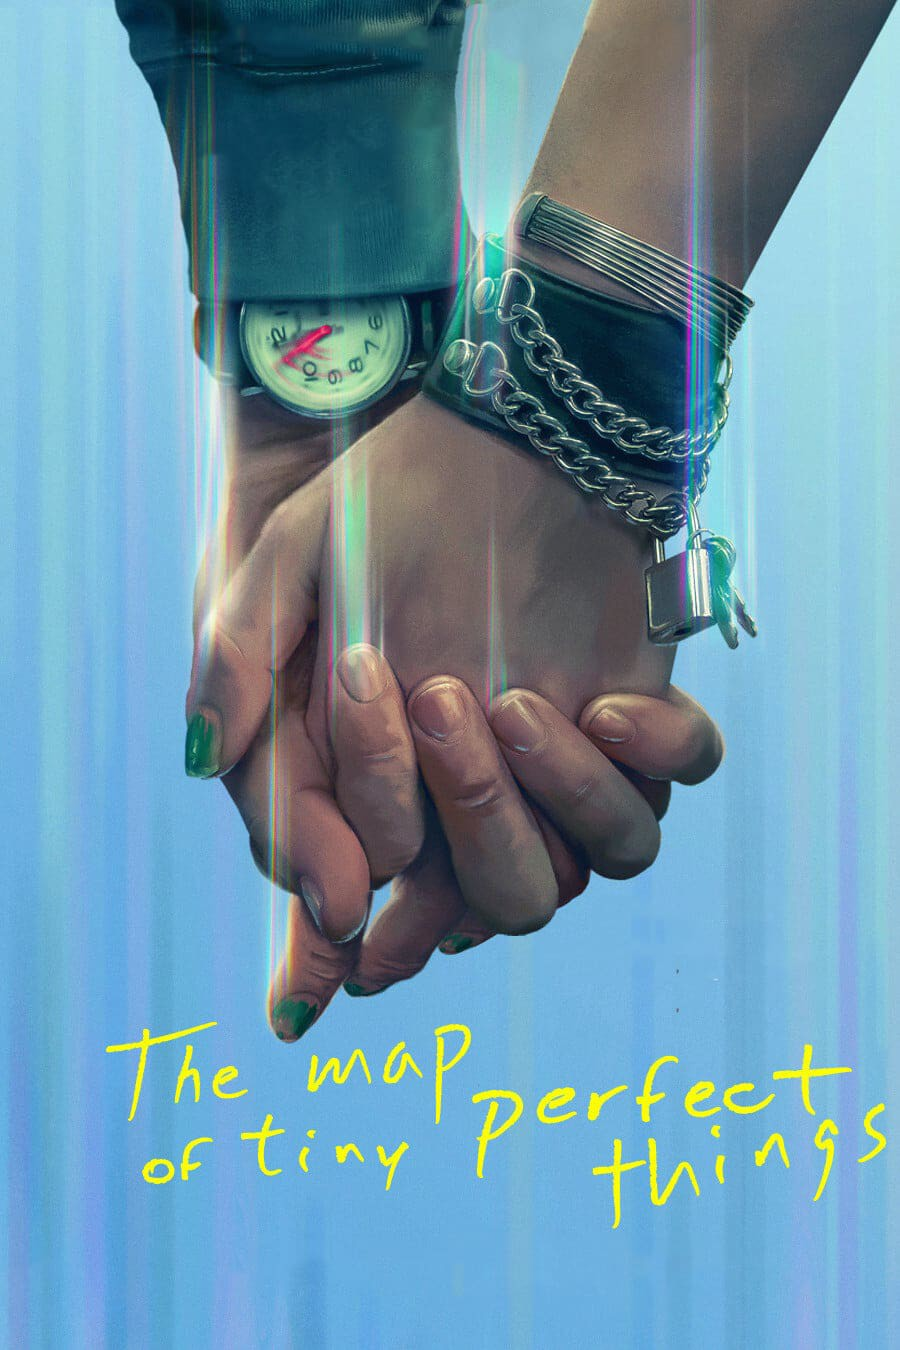 Watch Online The Map Of Tiny Perfect Things 2021 Full Movies ᴴᴰ1080p By A N G I Epa R K E Rs On The Map Of Tiny Perfect Things 2021 Free Feb 2021 Medium